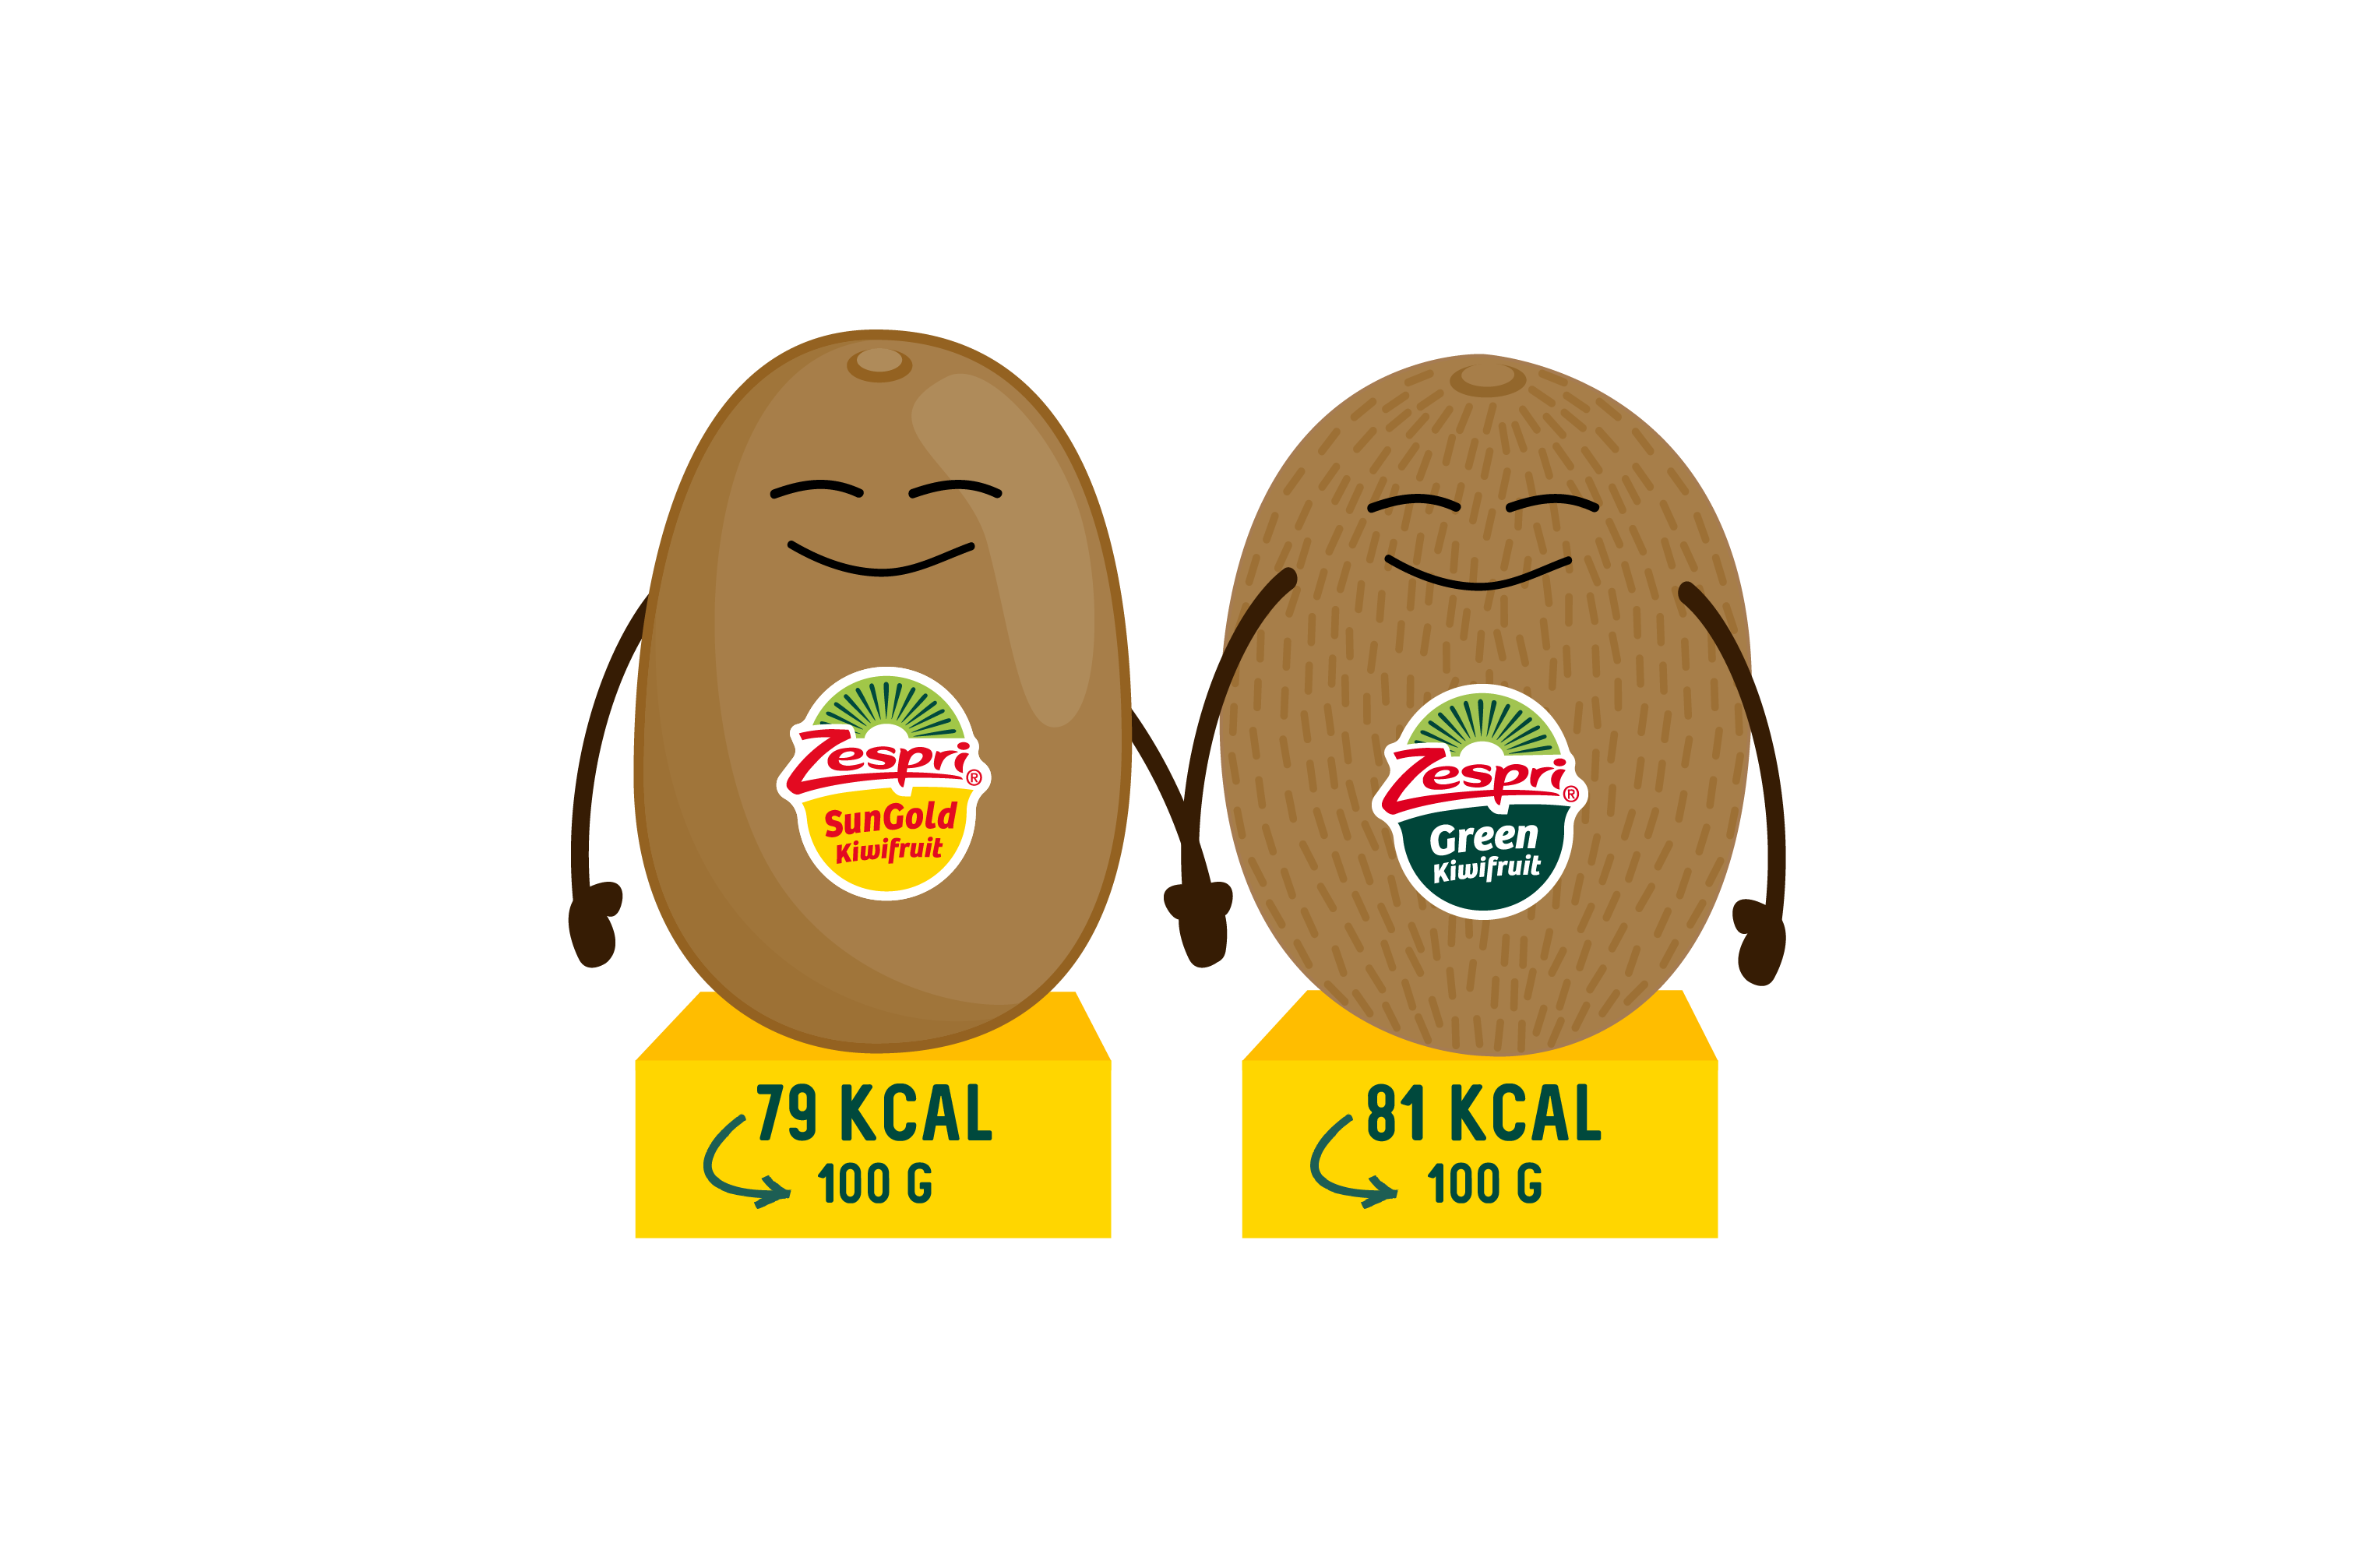 week42_Zespri_Green_kiwifruit_is_not-high_in_calories.png